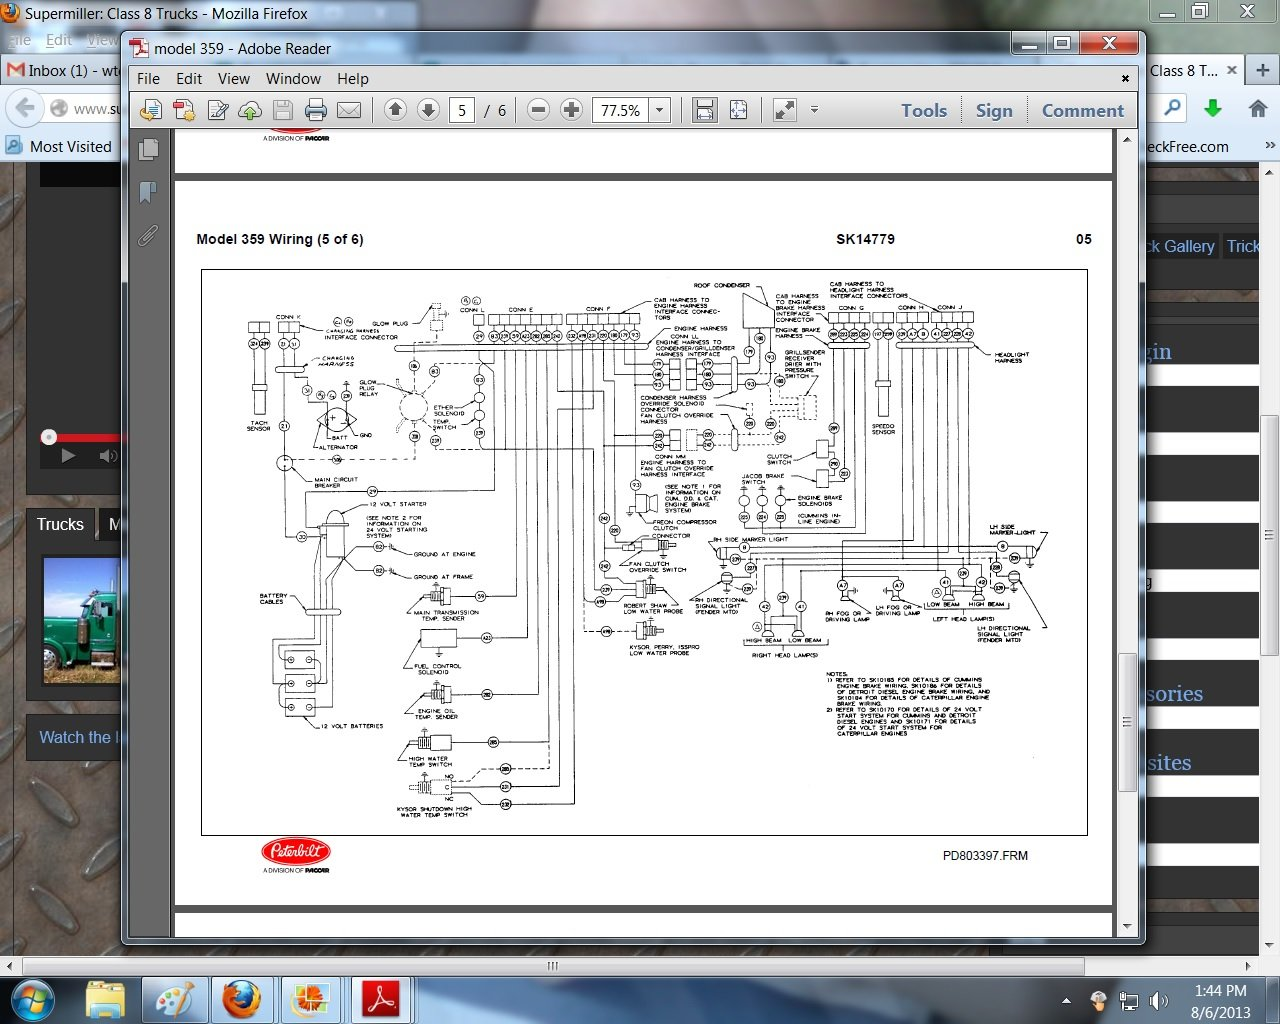 2013 08 06_184635_359_kw 359 peterbilt wiring diagram 2000 peterbilt 379 engine wiring Peterbilt 379 Electrical Diagram at crackthecode.co